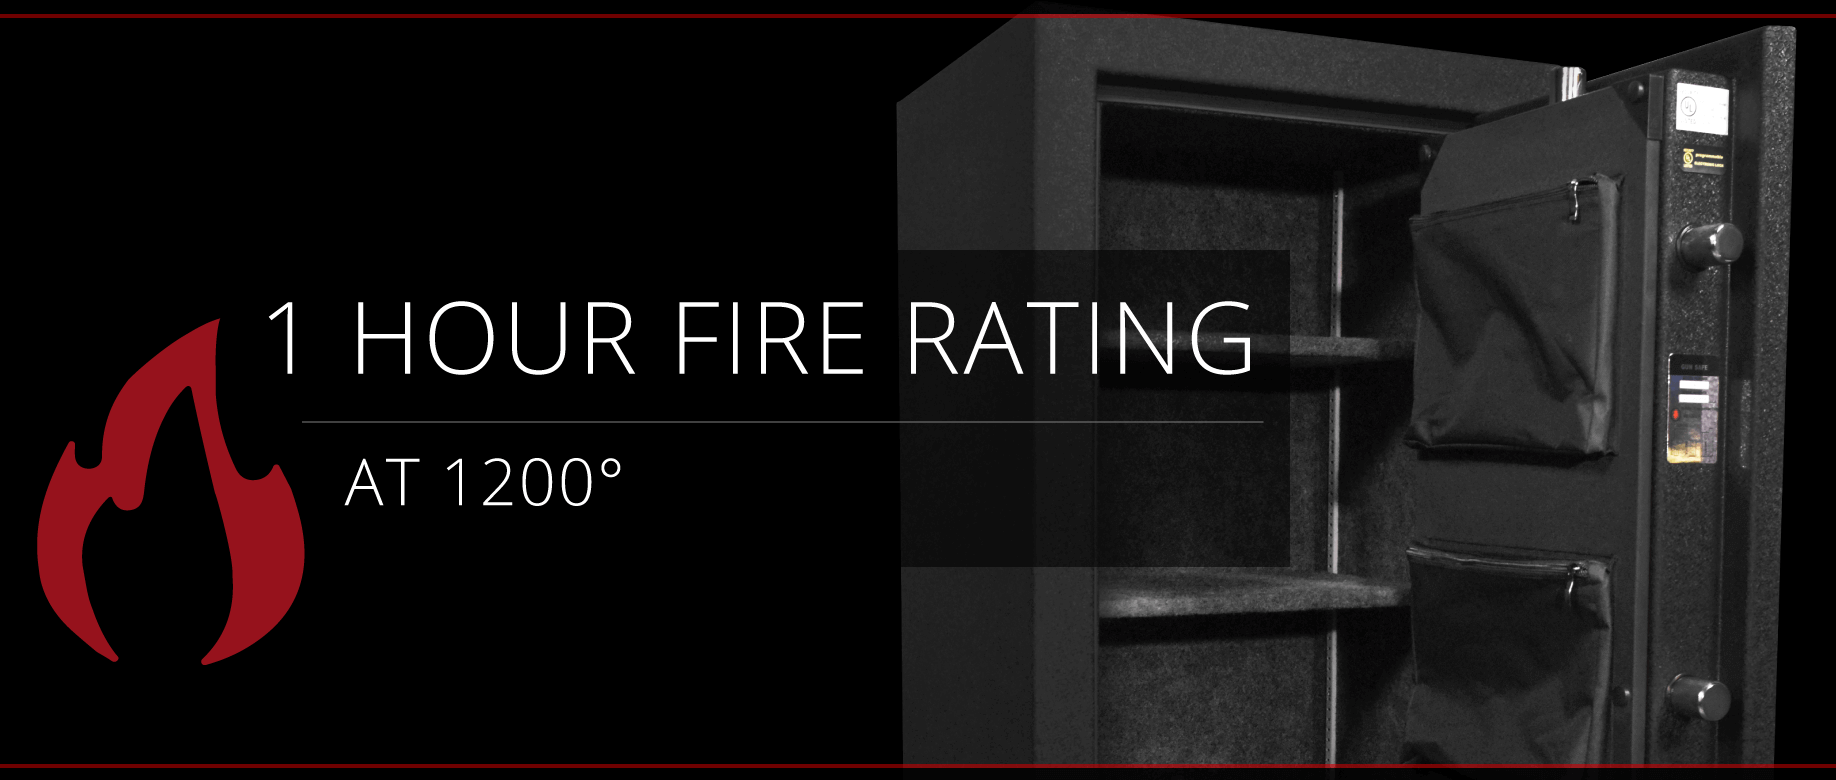 Stealth HS14 UL Home Safe 1 Hour Fire Rating